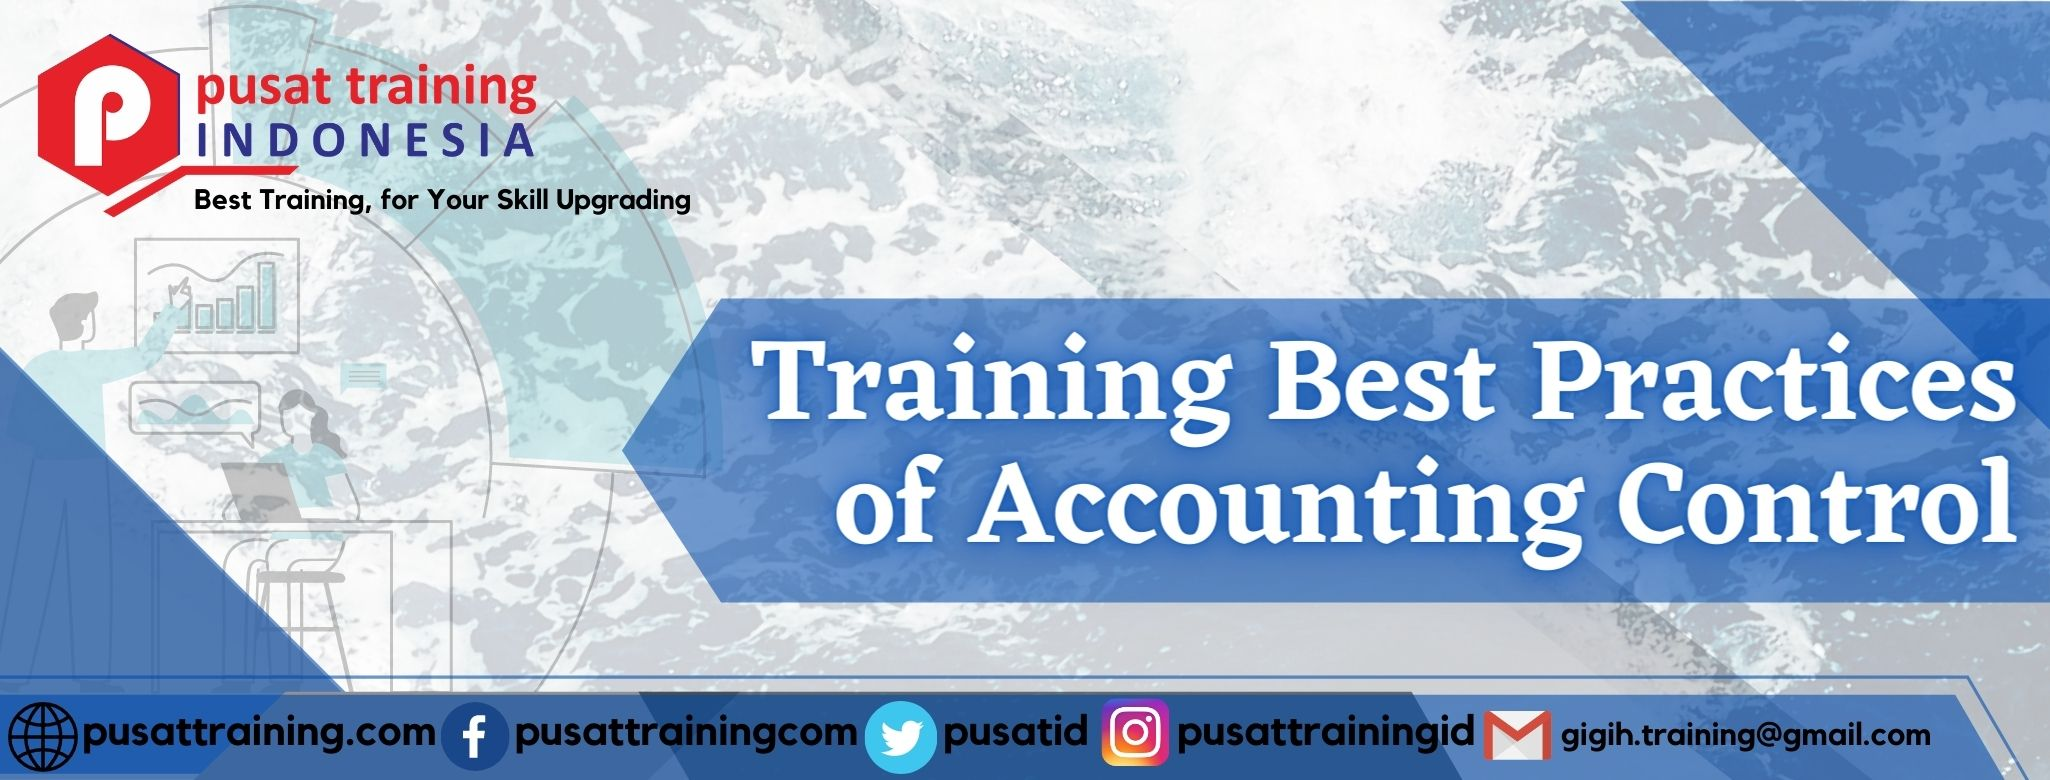 Training-Best-Practices-of-Accounting-Control